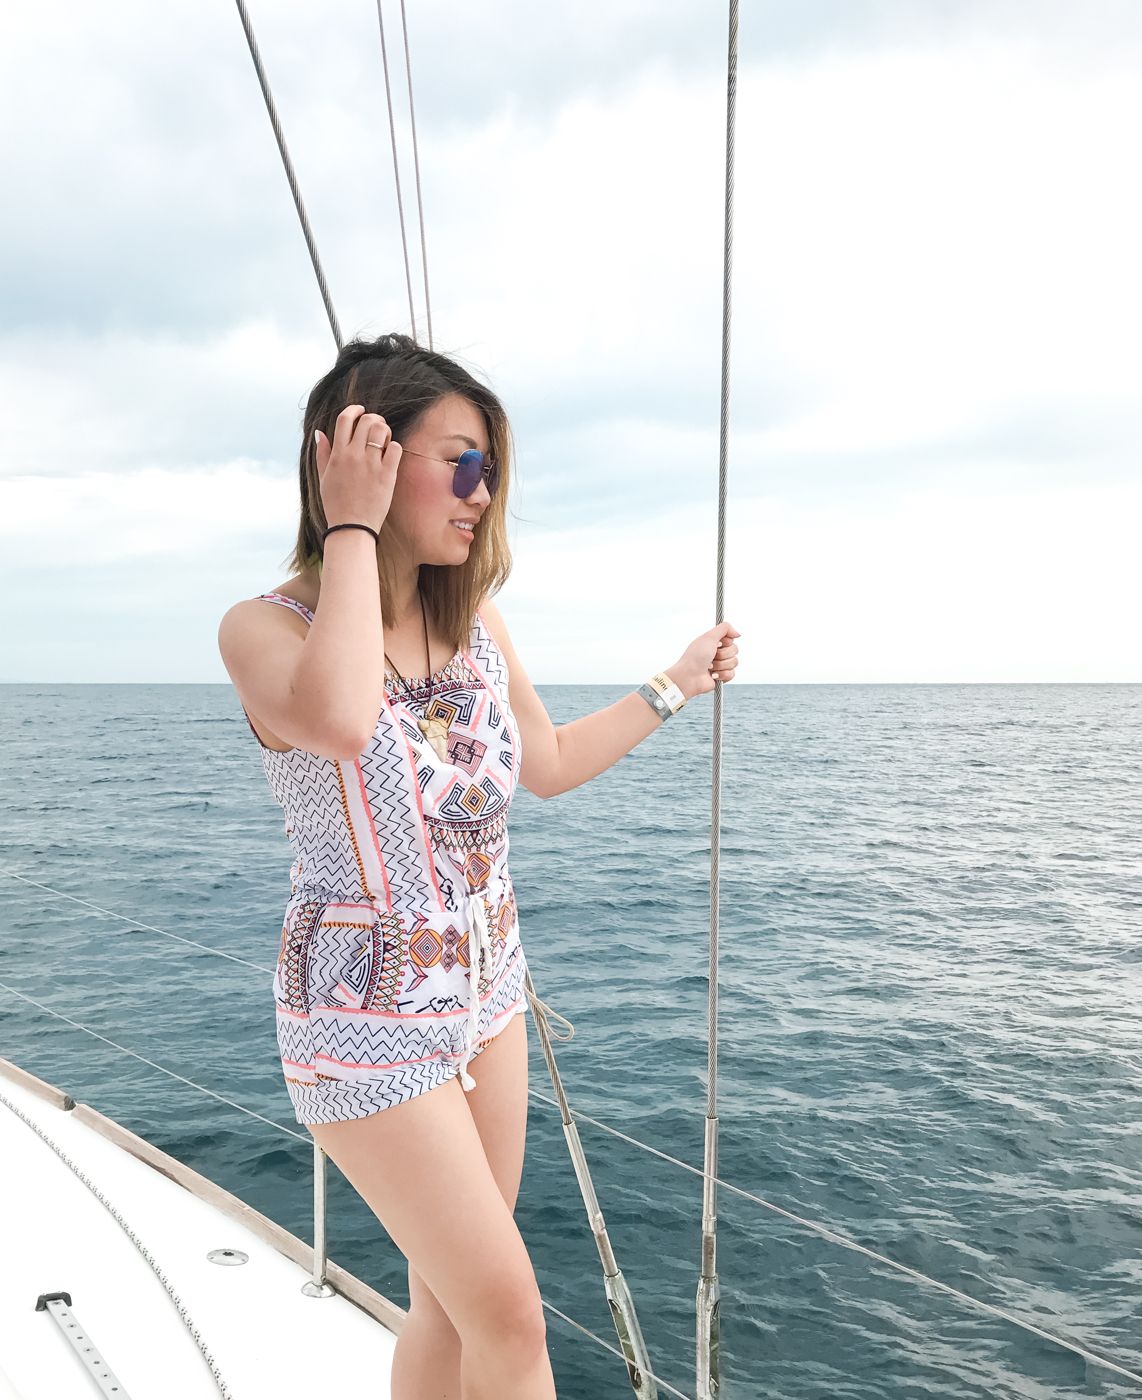 Sailing in Cabo San Lucas, Mexico | The Chic Diary.jpg